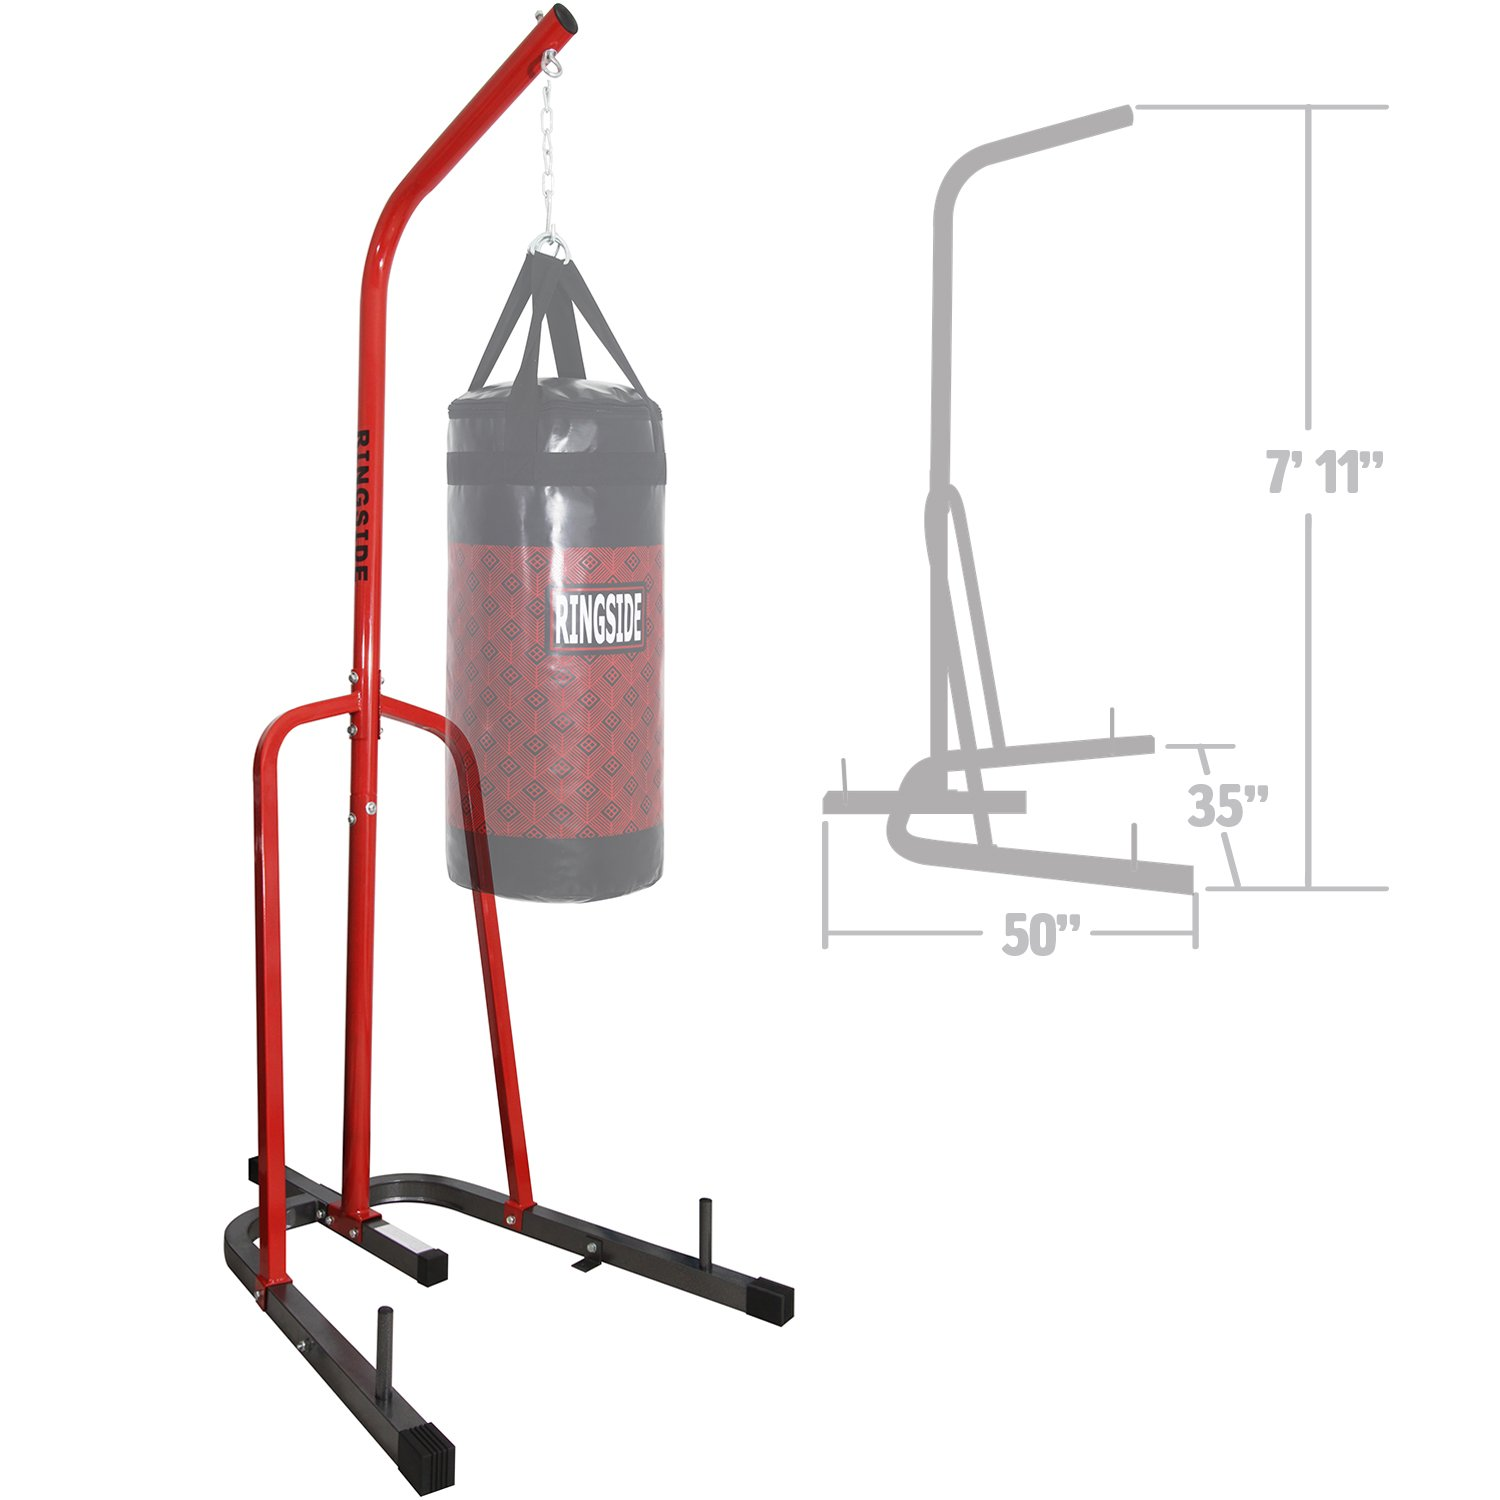 Ringside Prime Free-Standing Station Steel Boxing MMA Heavy Bag Stand by Ringside (Image #1)